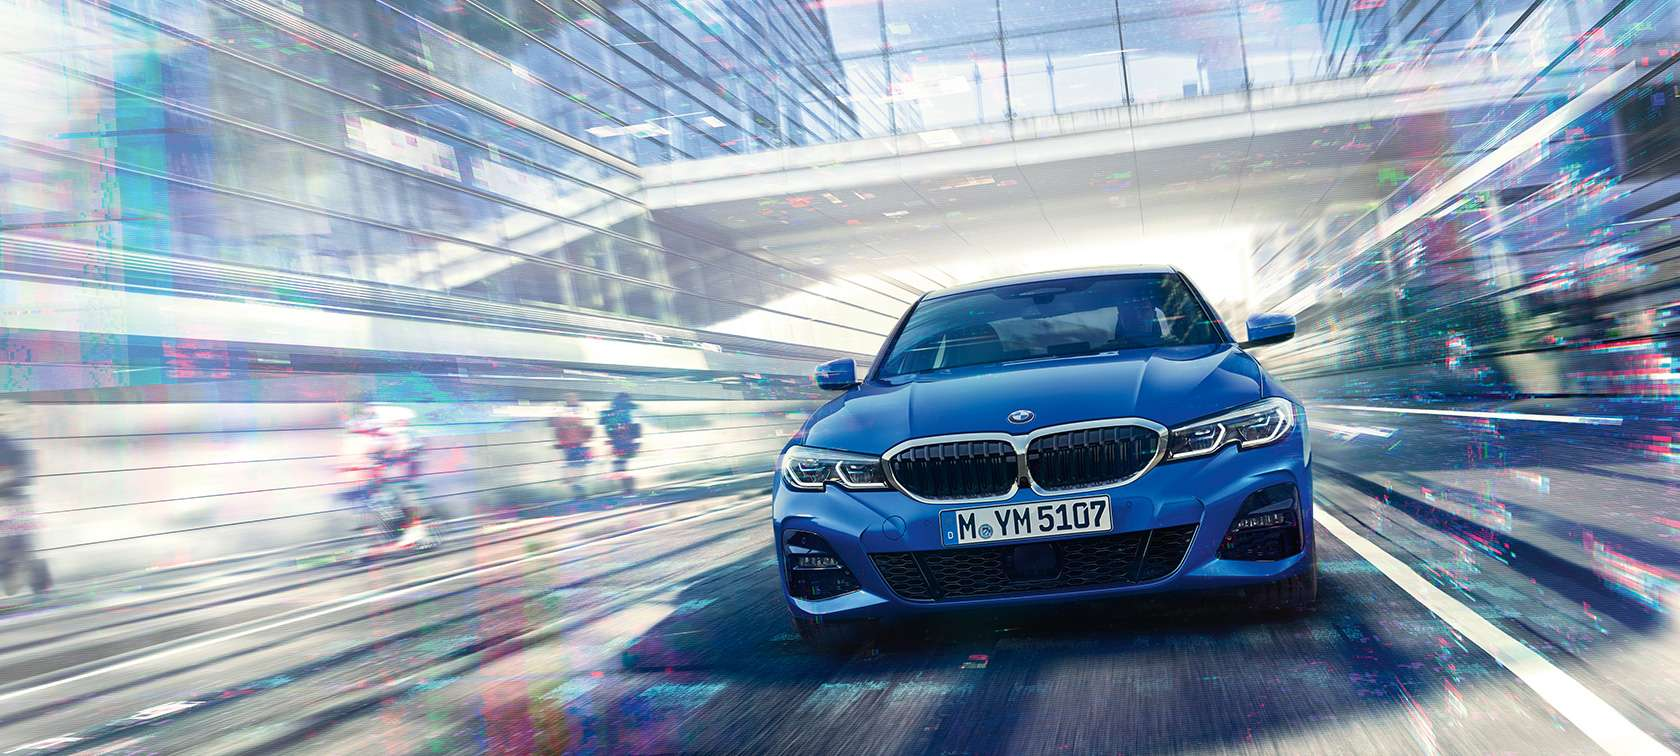 NUOVA BMW SERIE 3 BERLINA CON WHY-BUY.